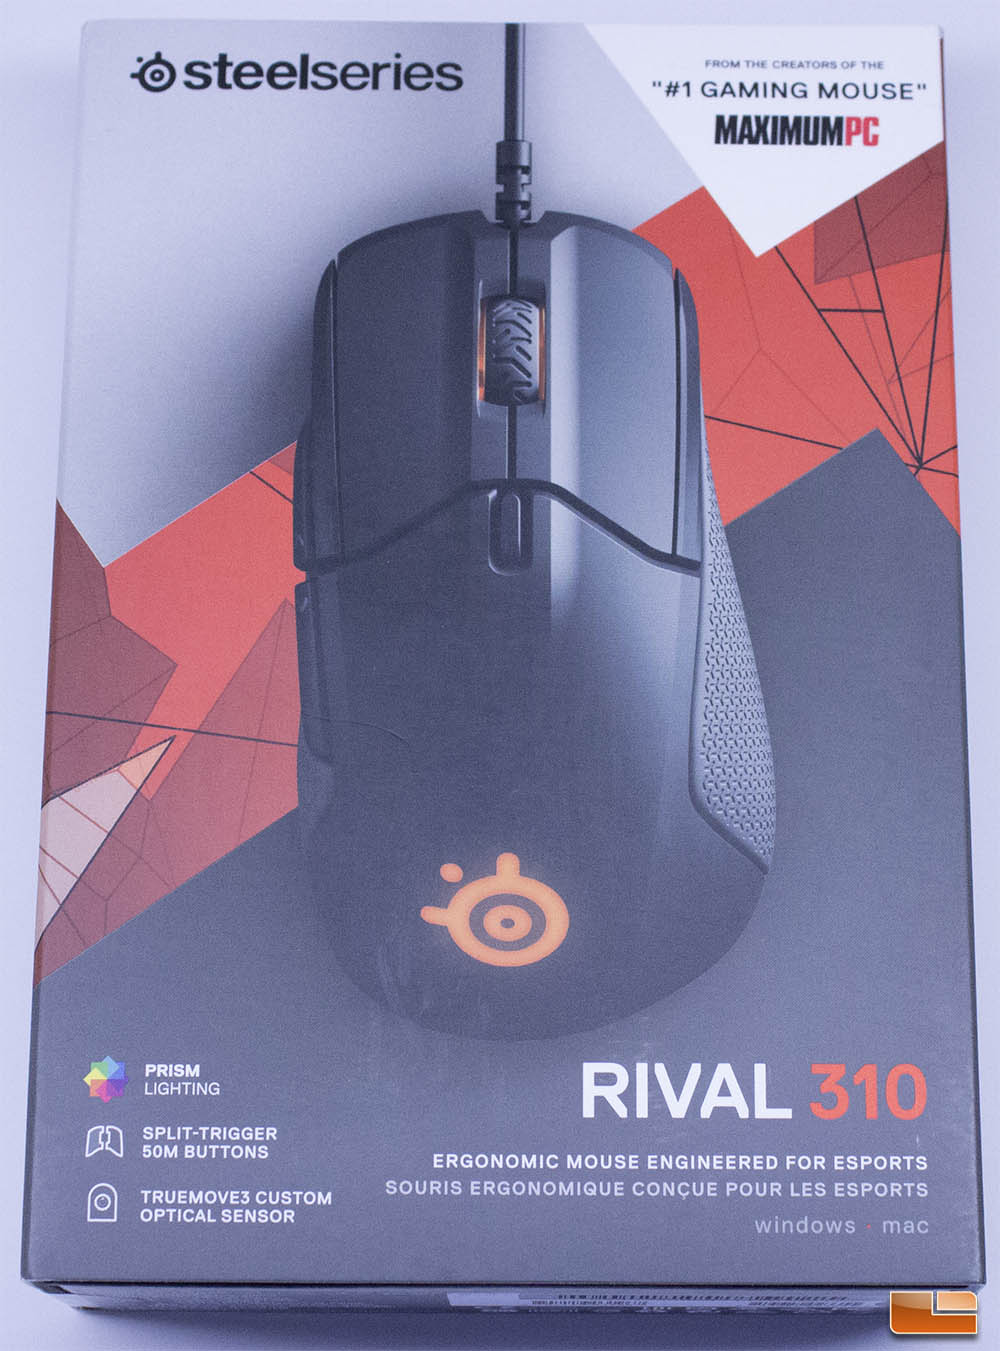 8e6110d0145 SteelSeries Rival 310 Ergonomic Gaming Mouse Review - Legit ...